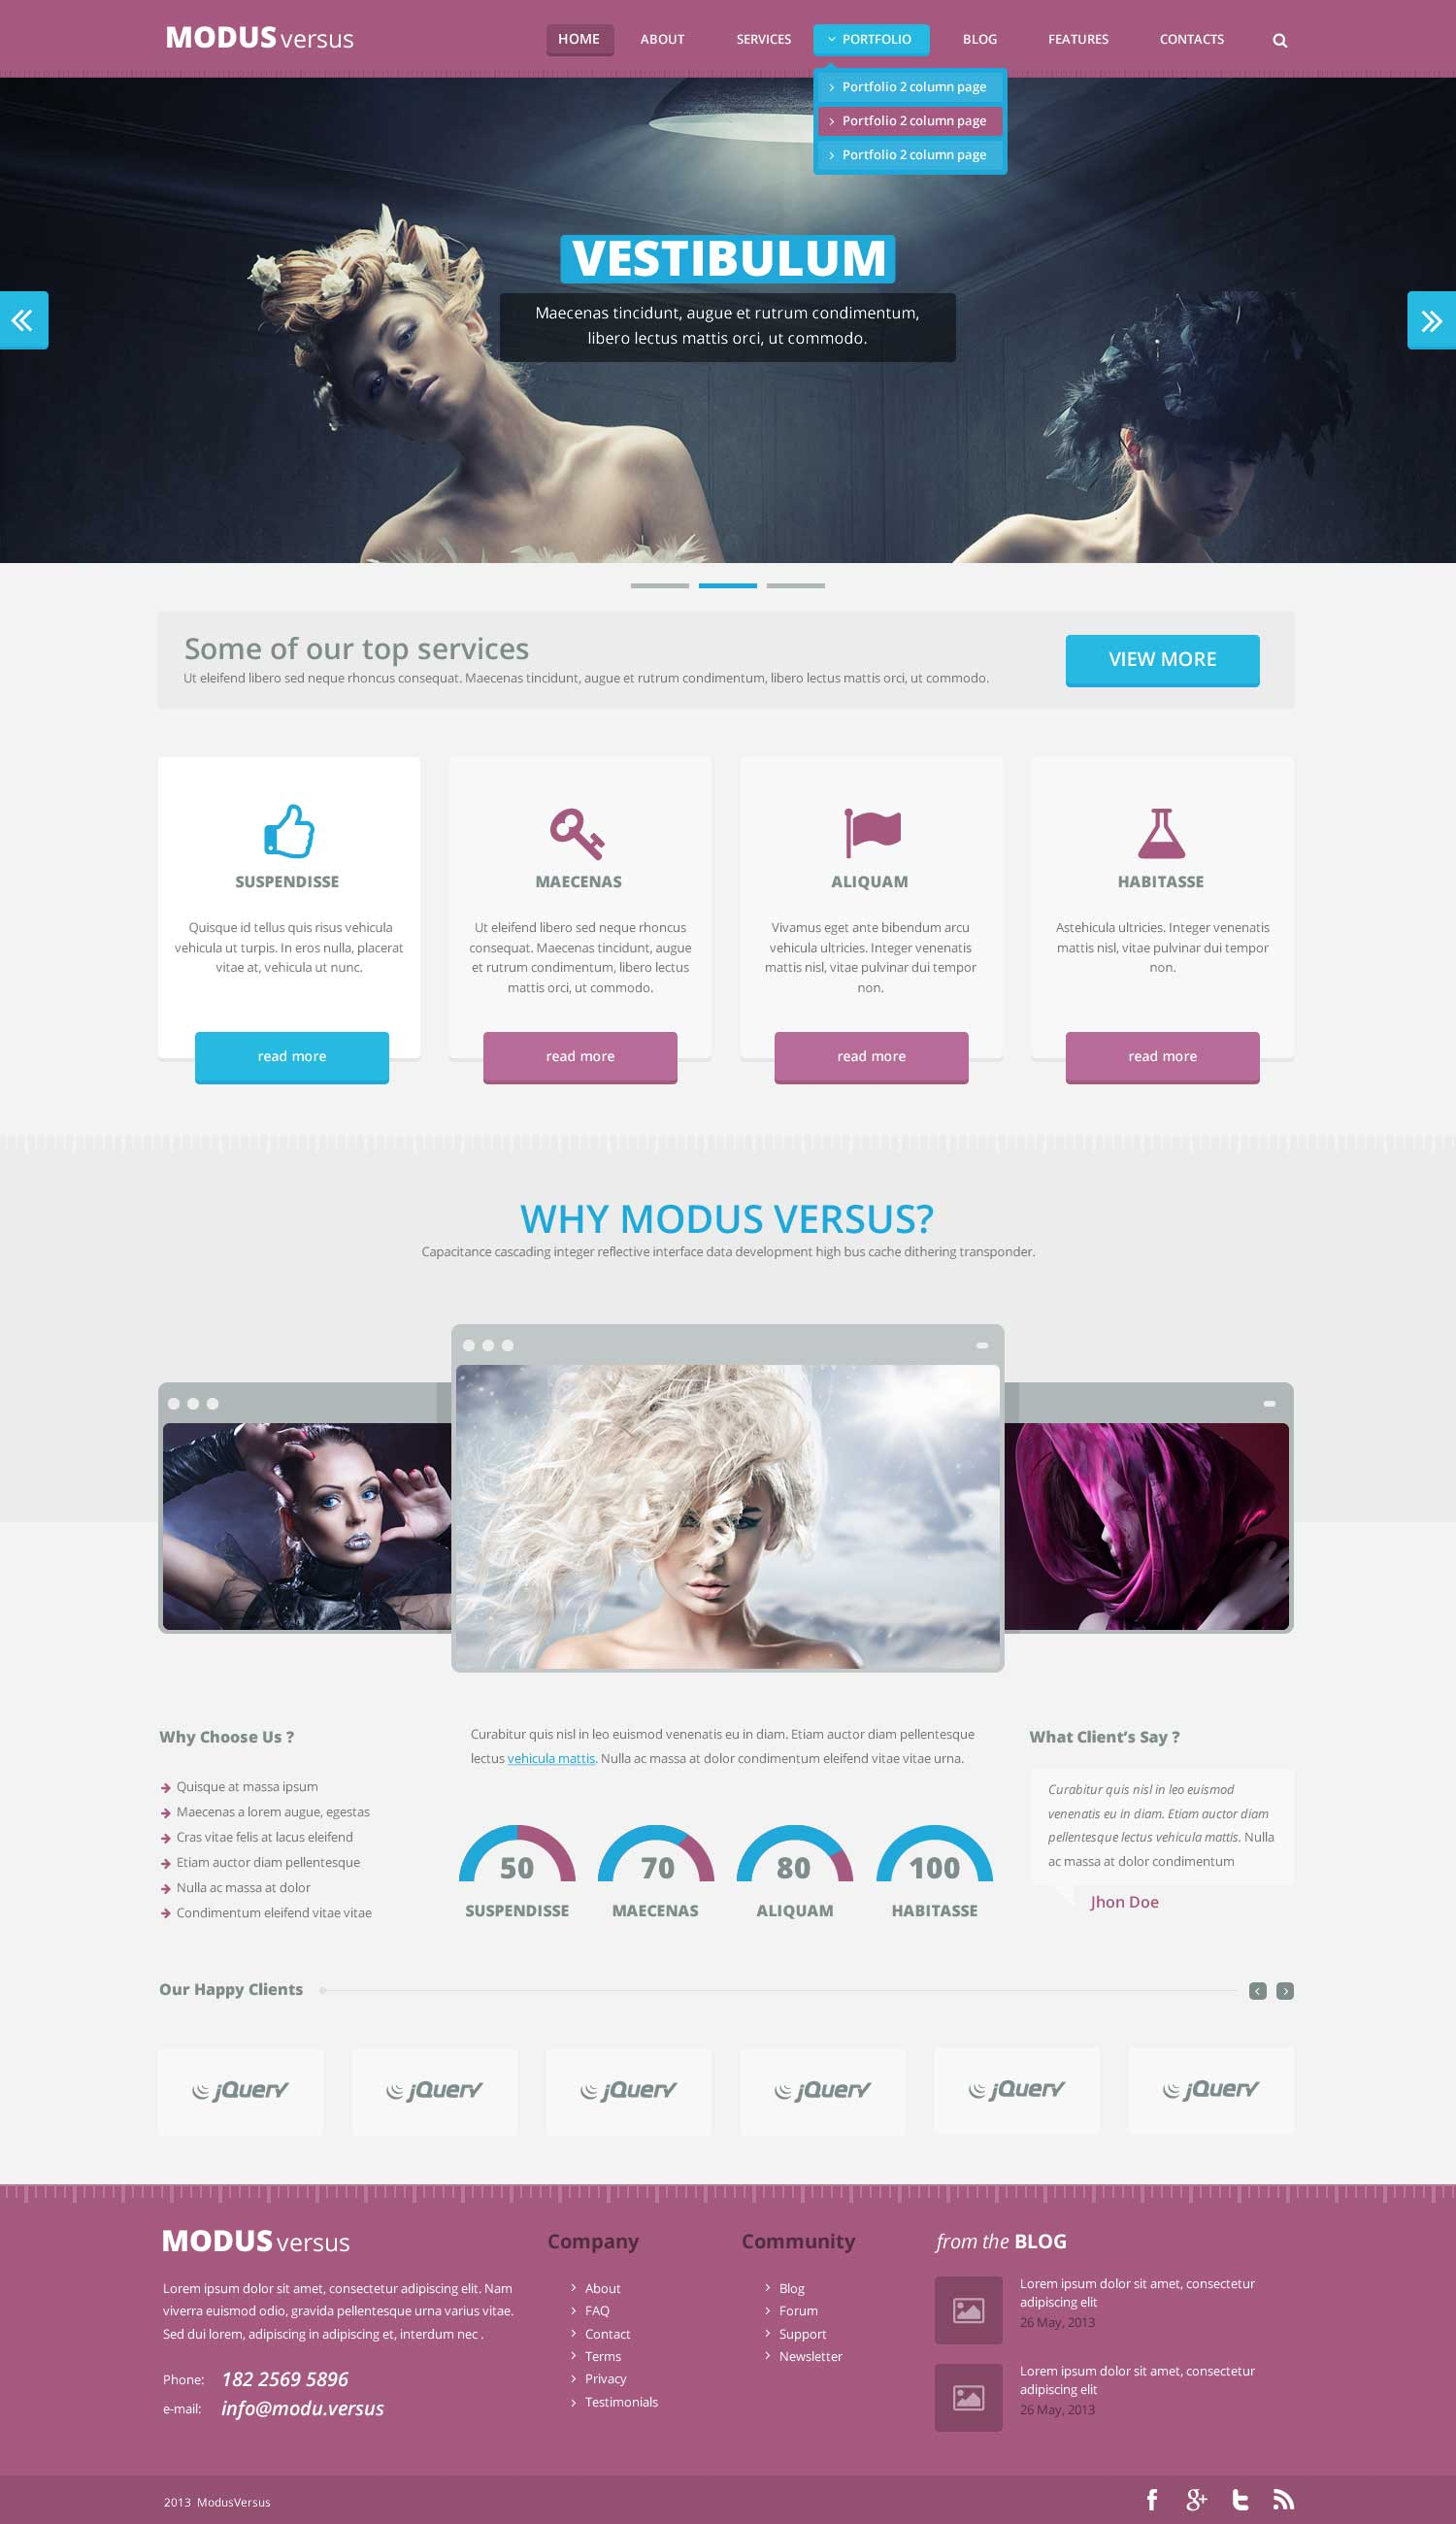 modus_versus_homepage_purple_blue